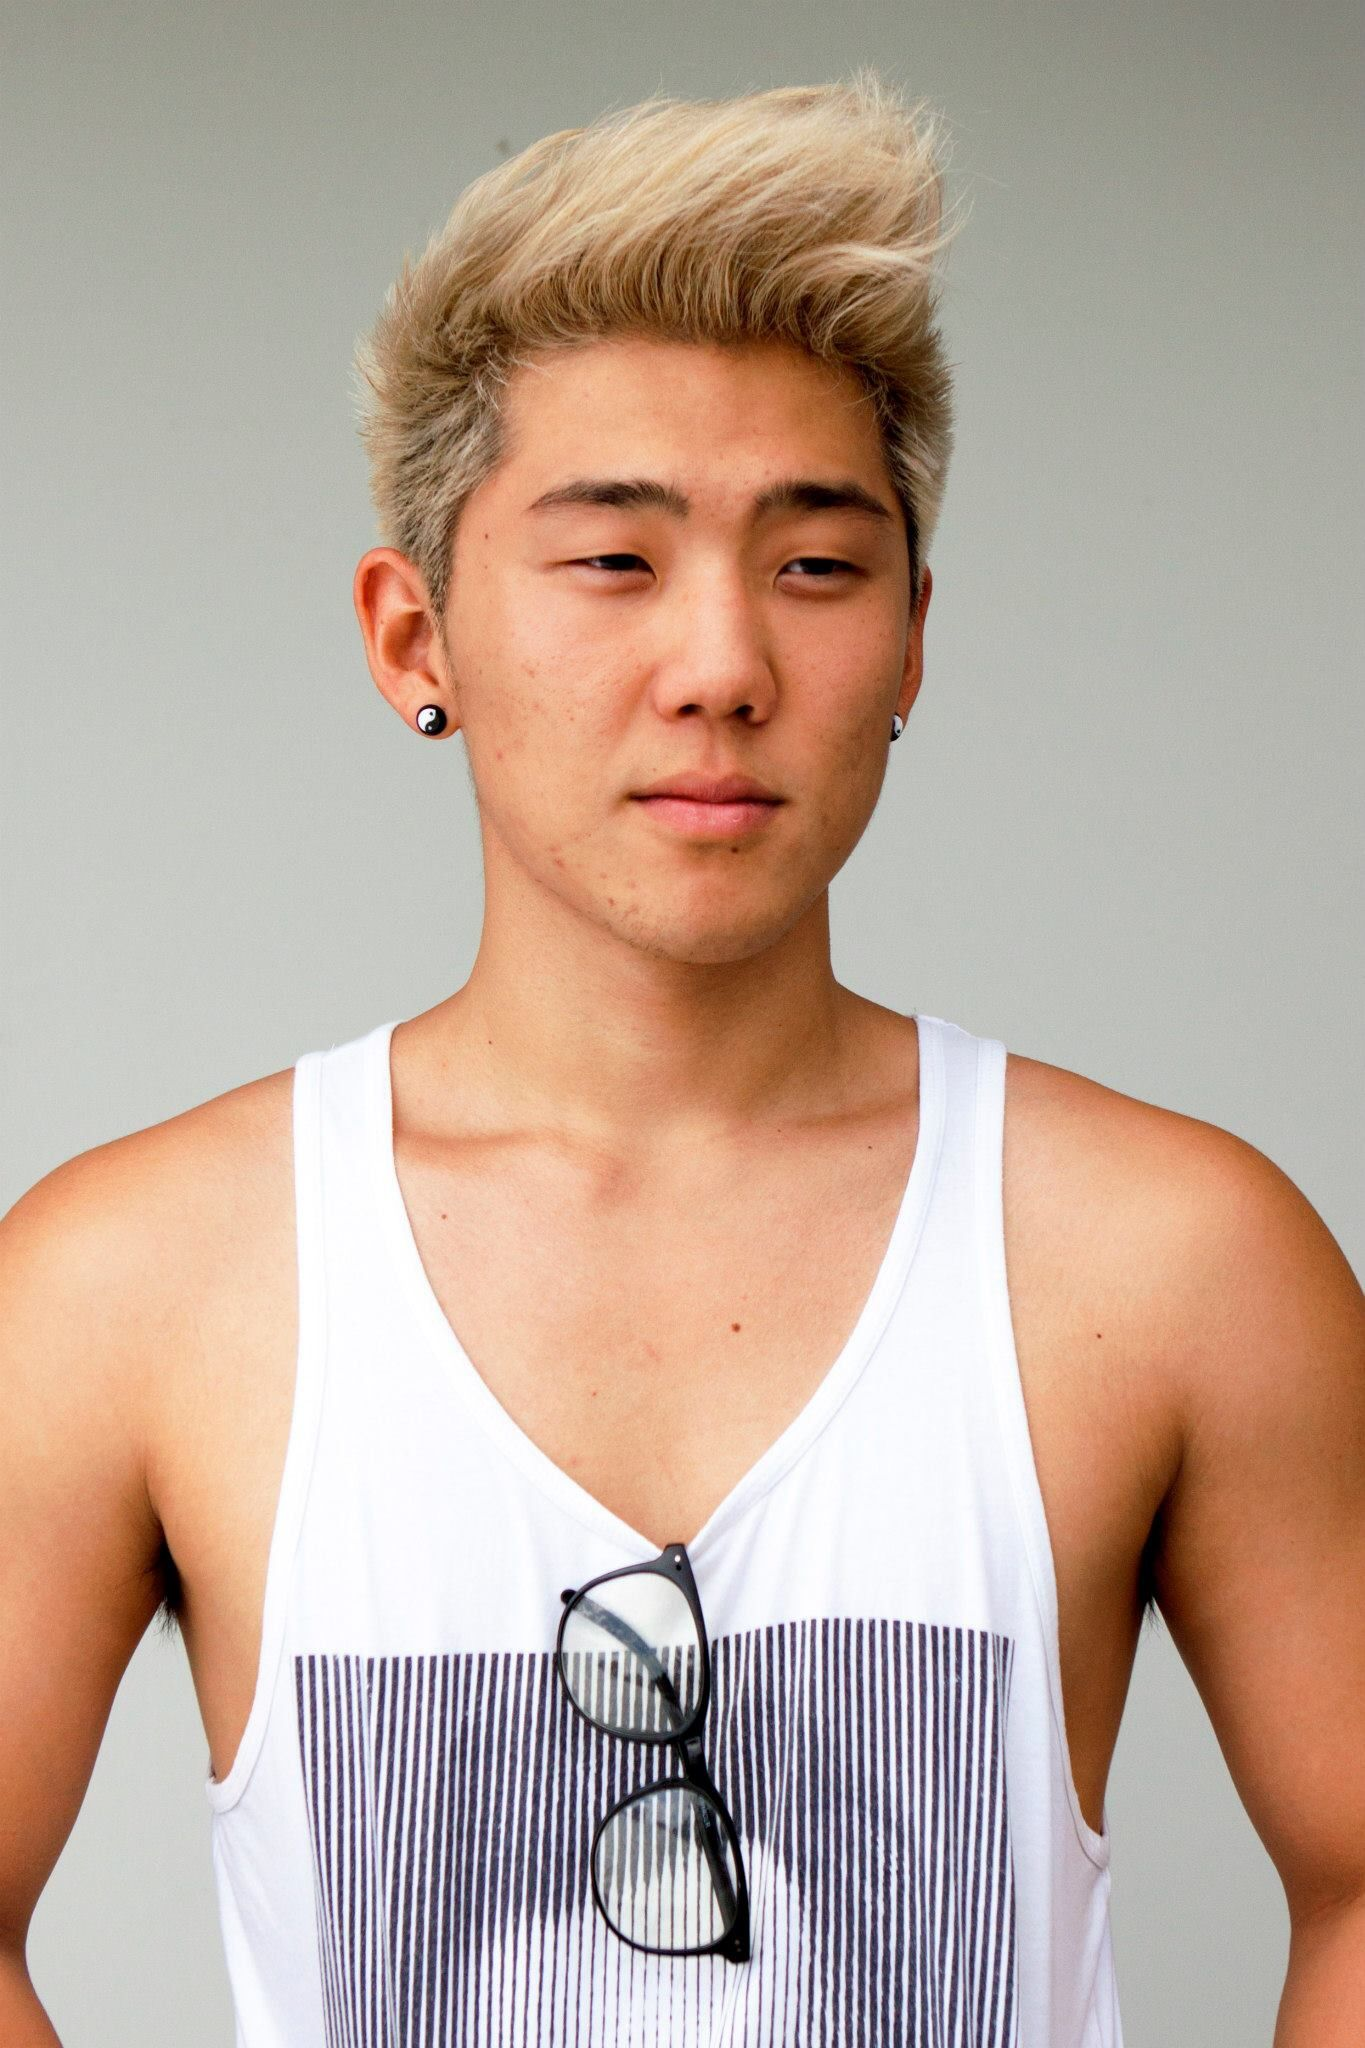 Blonde Asian Man : blonde, asian, Platinum, Asian, Men's, Hairstyle,, Hair,, Hairstyles